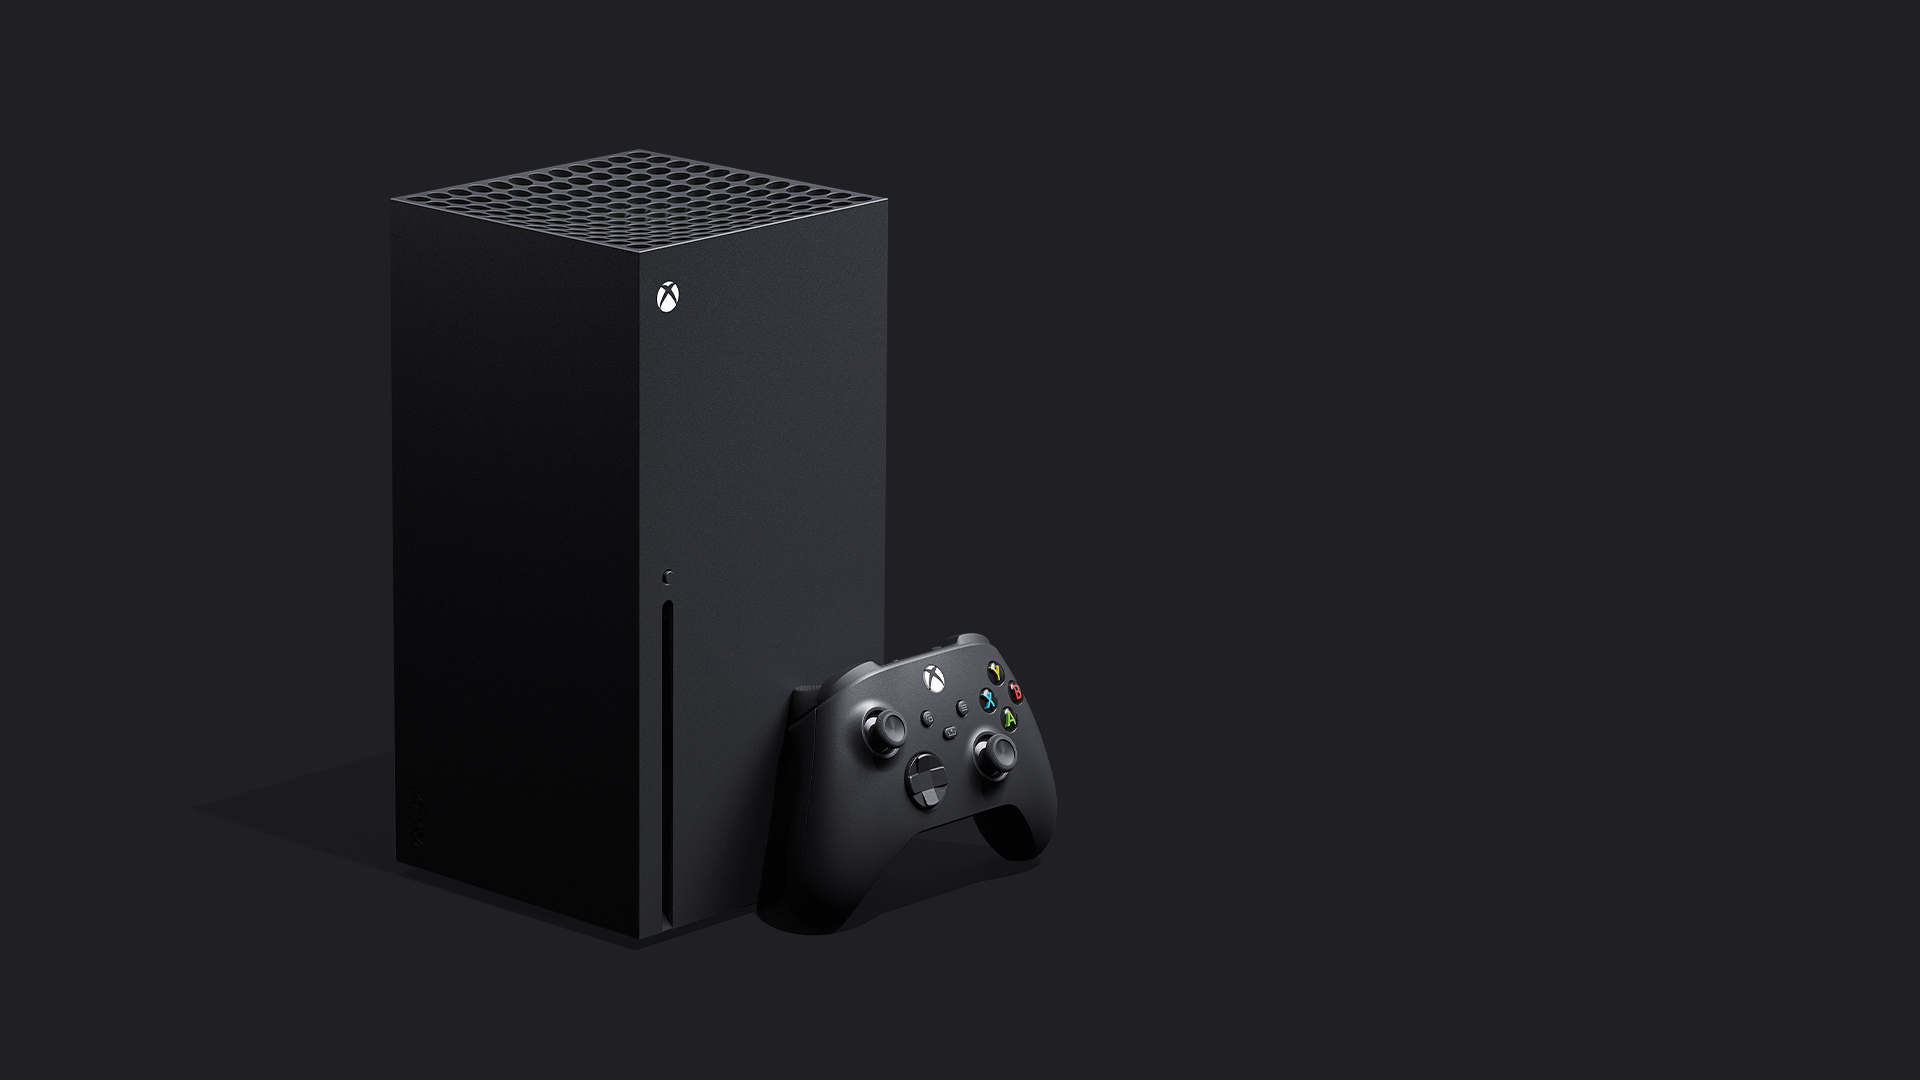 Xbox Series X with a controller on a grey background